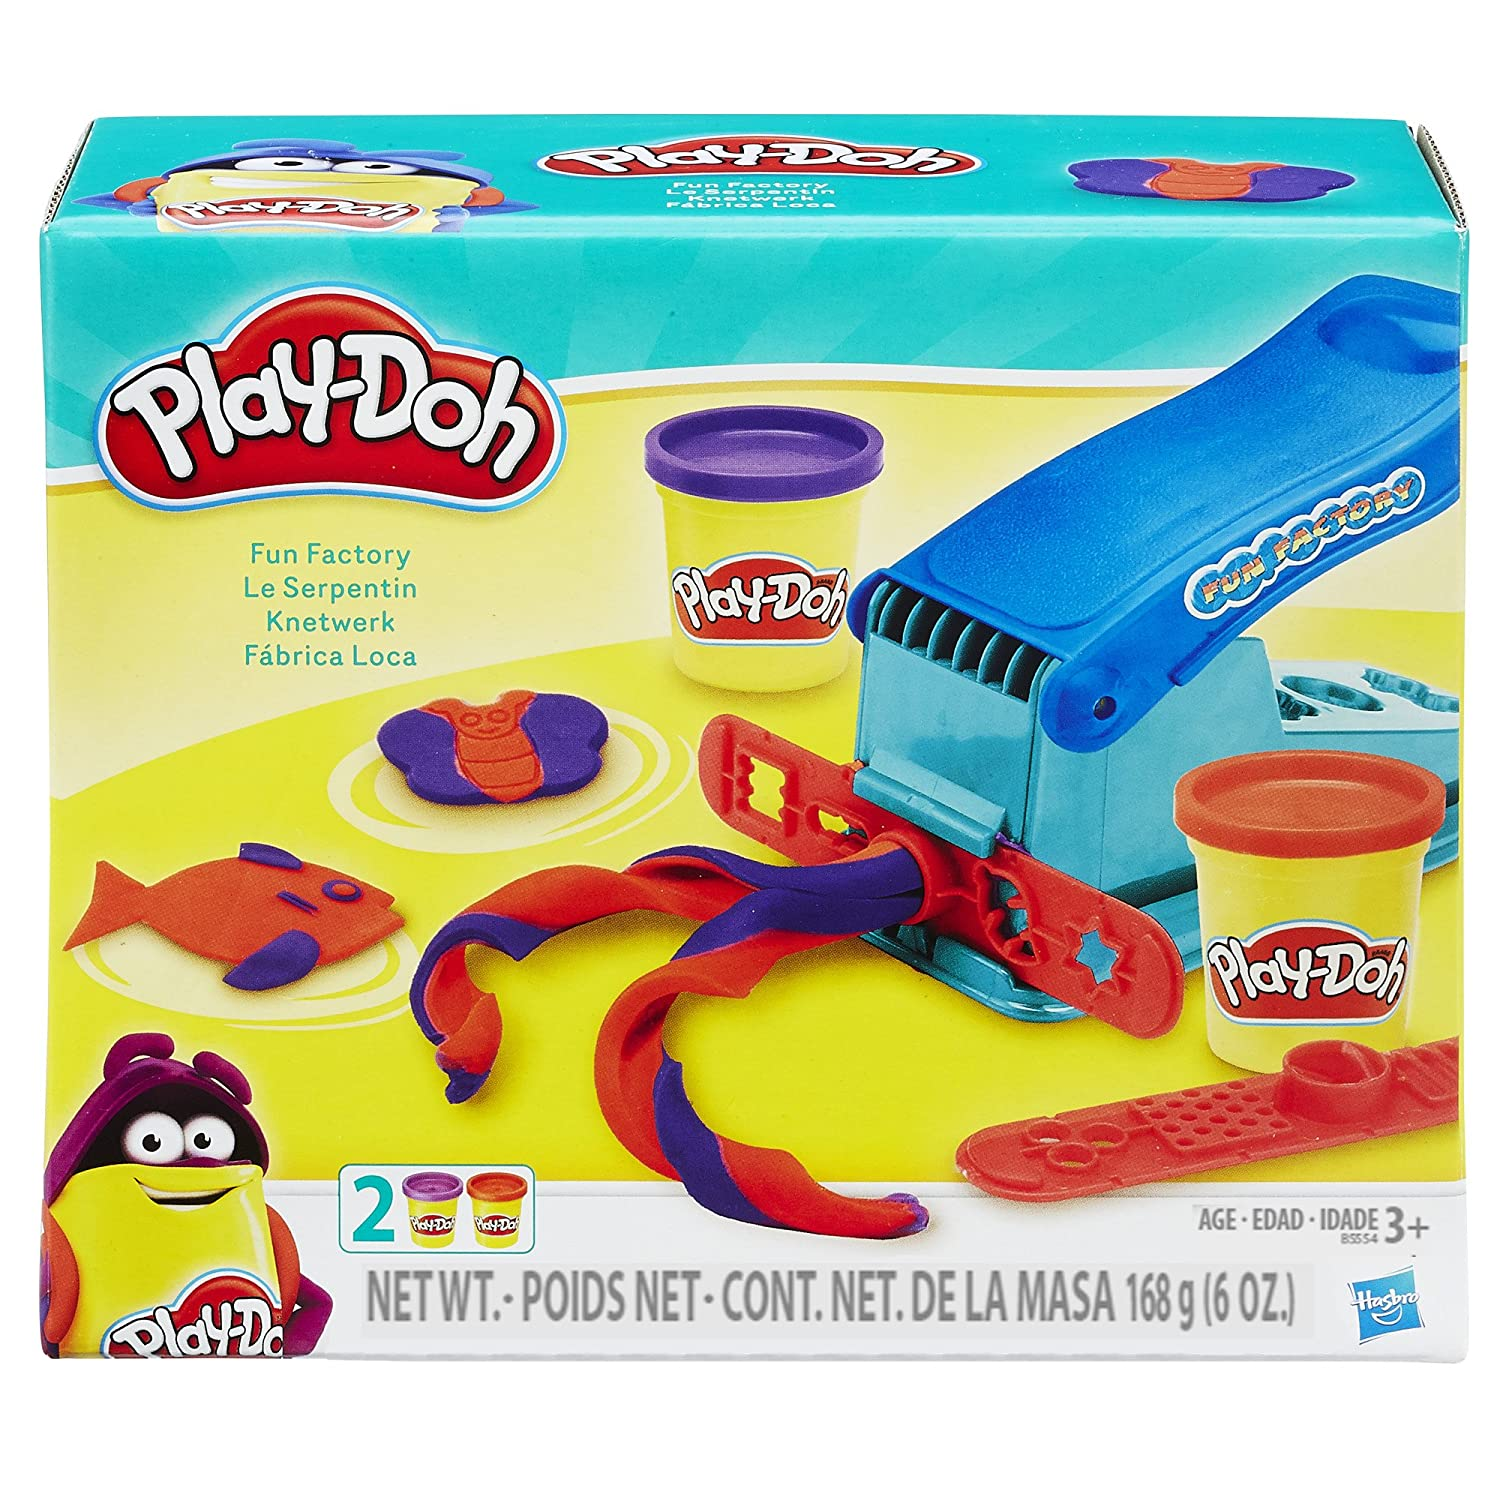 Amazon Play Doh Fun Factory Set Toys & Games